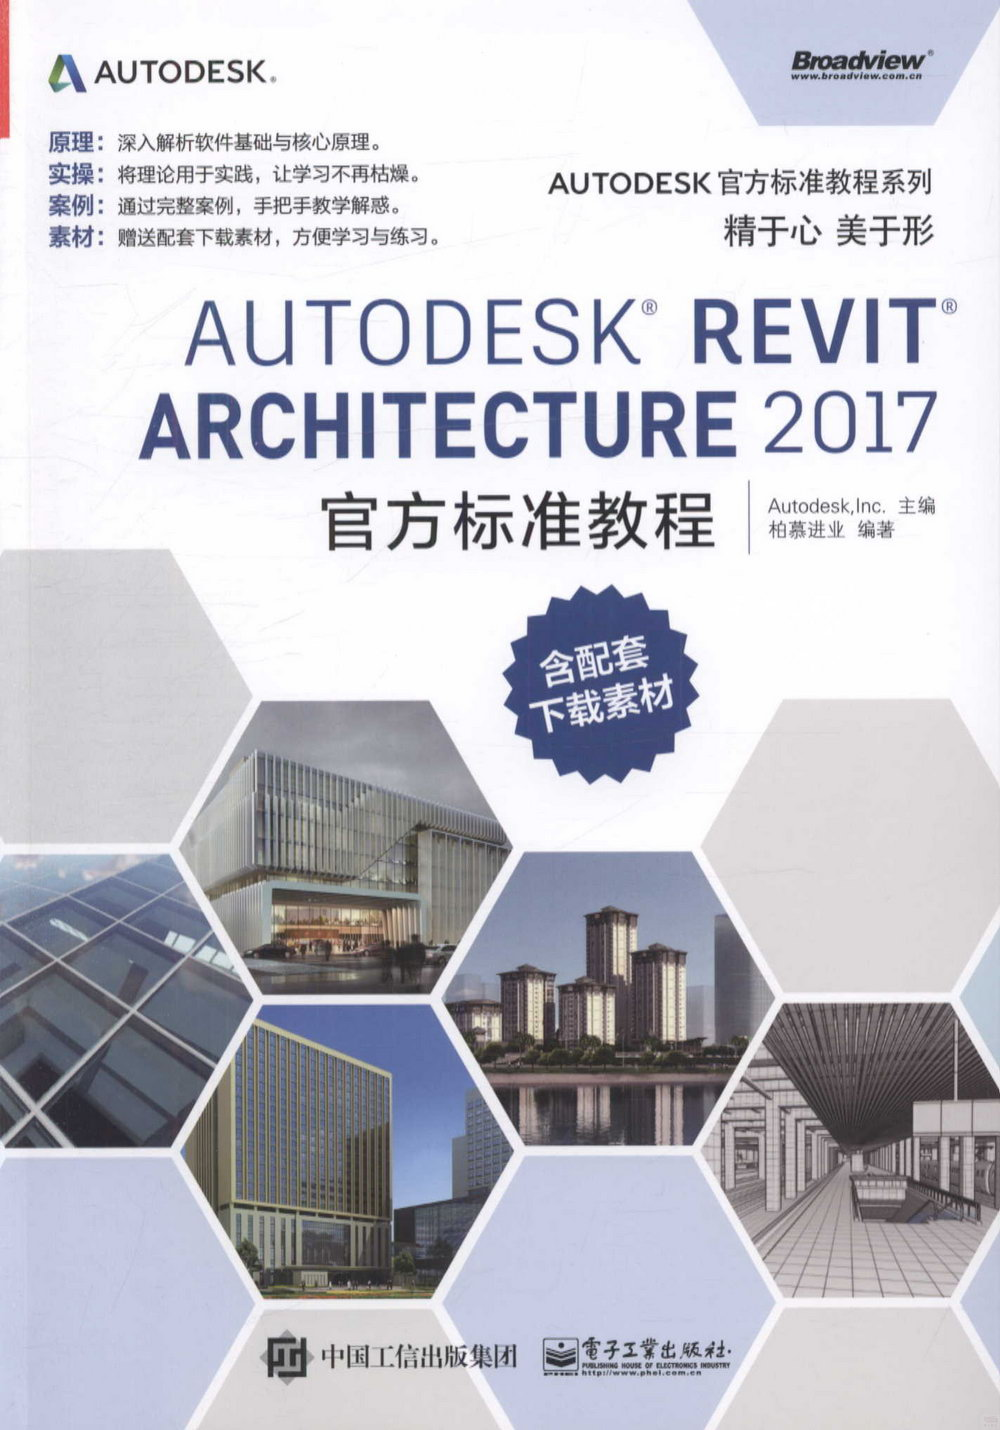 Autodesk Revit Architecture 2017 官方標准教程